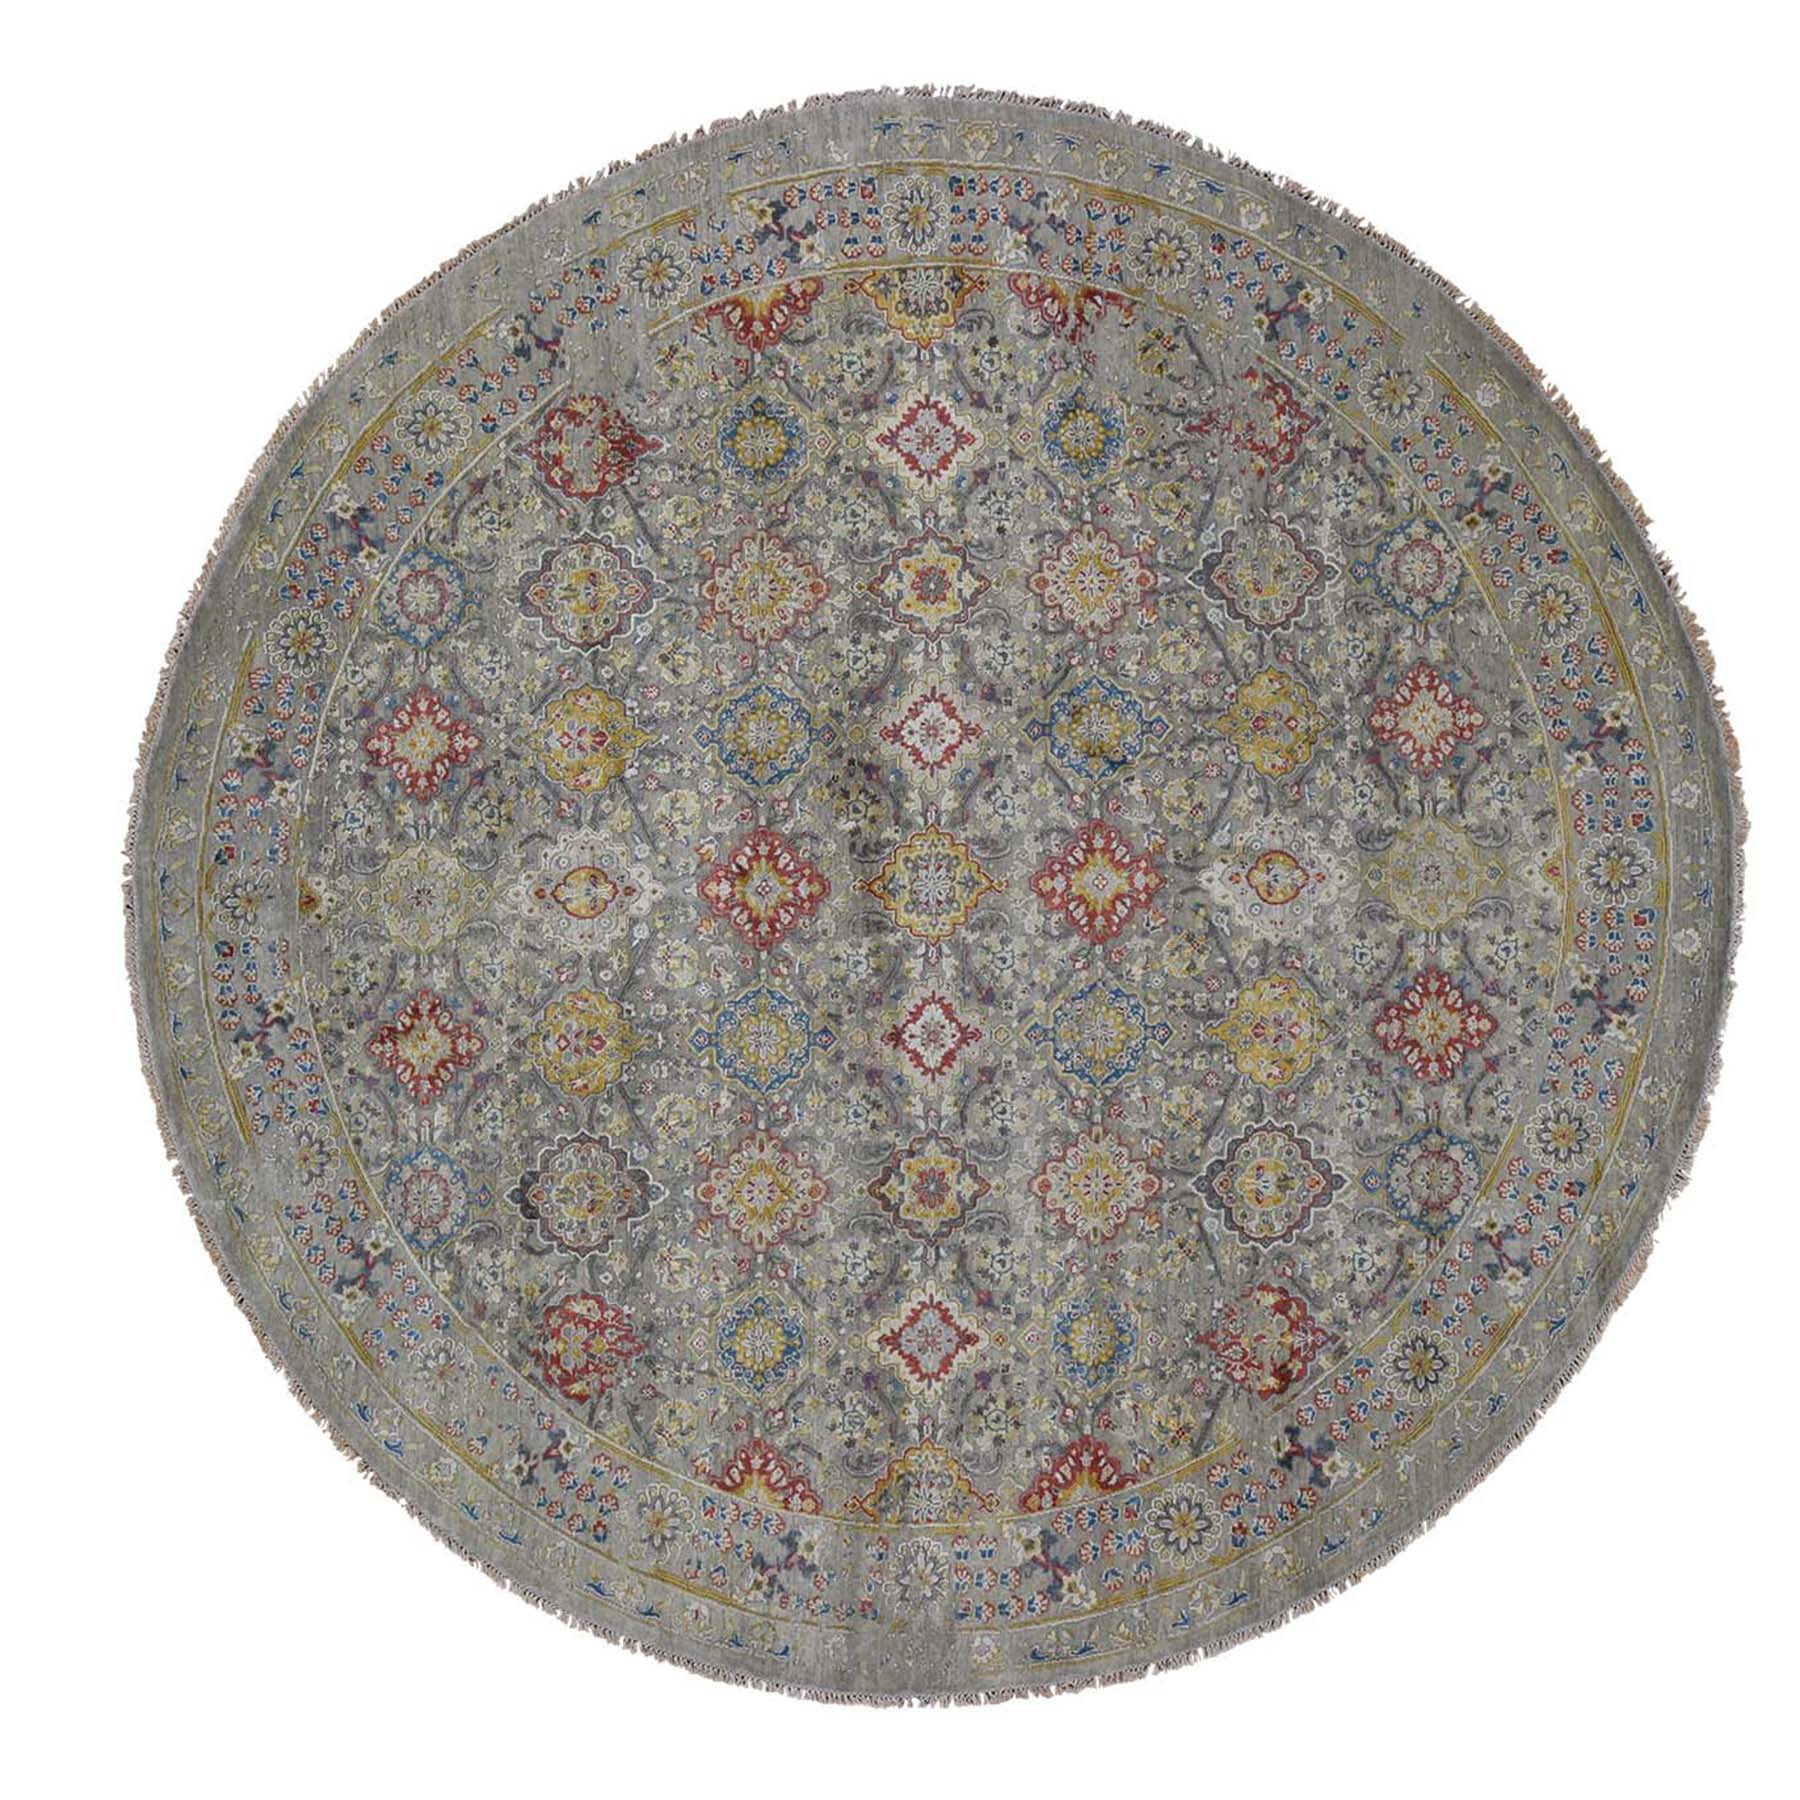 10'X10' The Sunset Rosettes Pure Silk And Wool Hand-Knotted Oriental Round Rug moad6b09